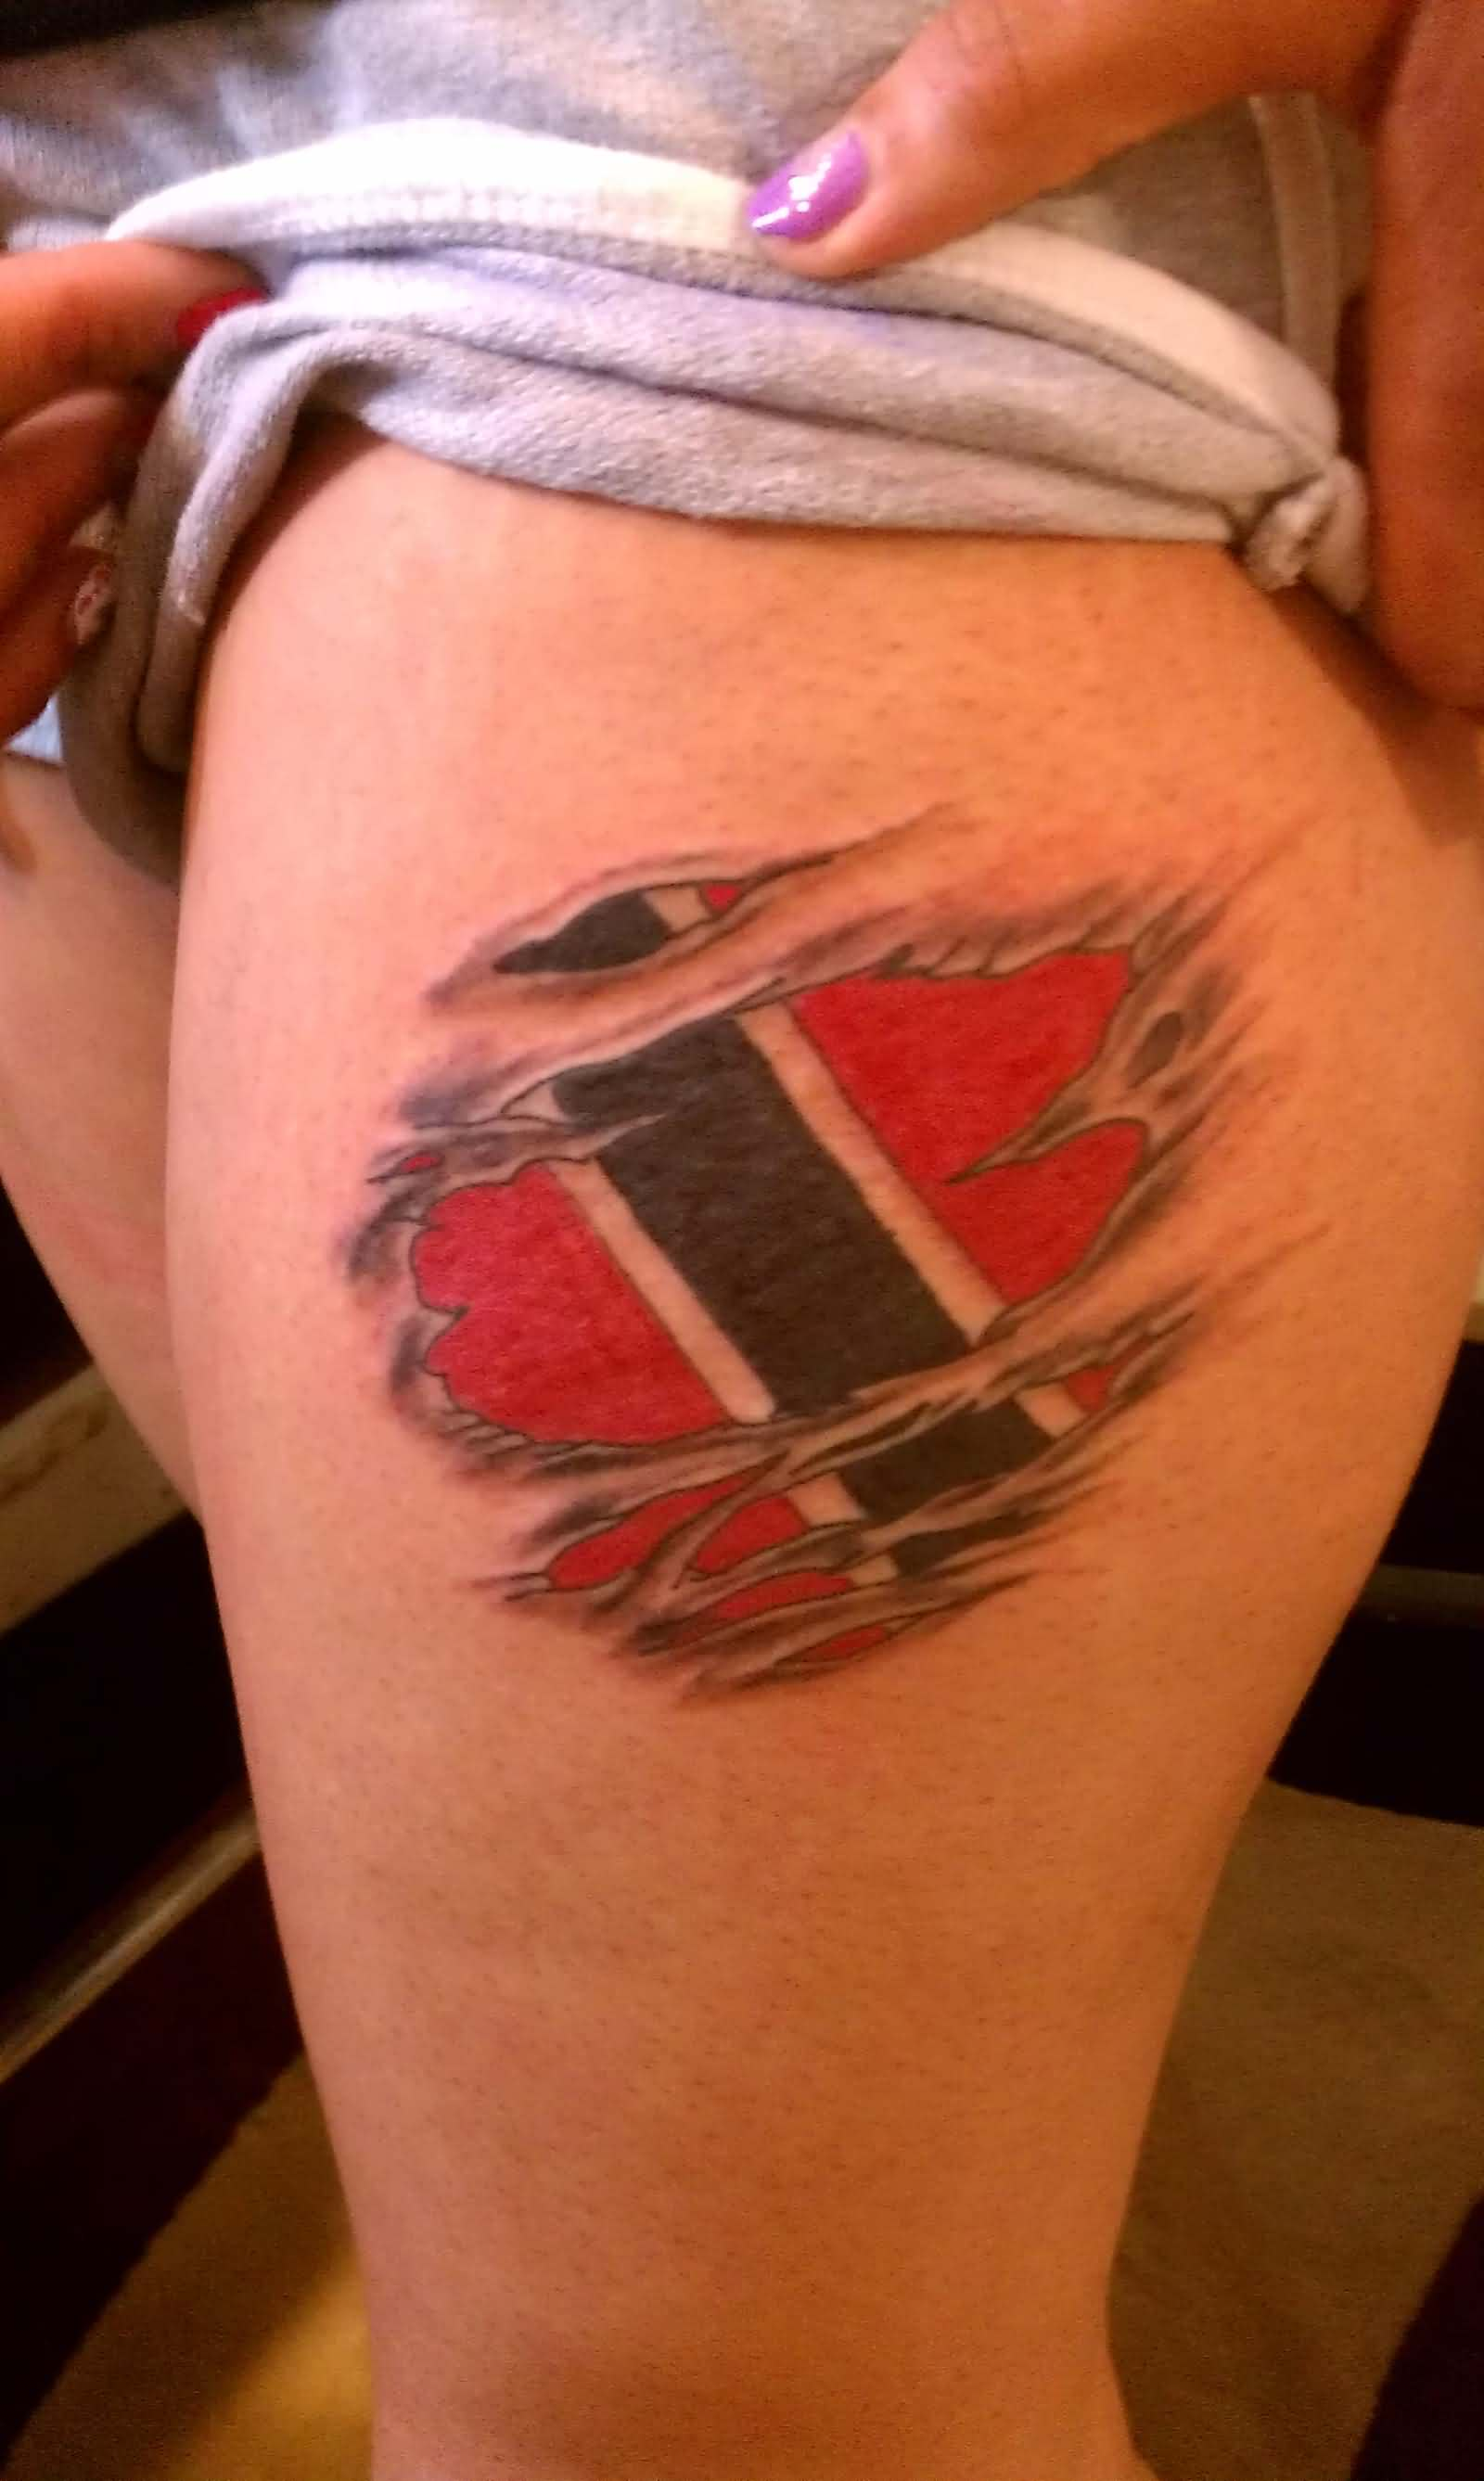 Name canadian flag ripping through skin tattoo designjpg pictures - Trinidad Flag Tattoo On Thigh